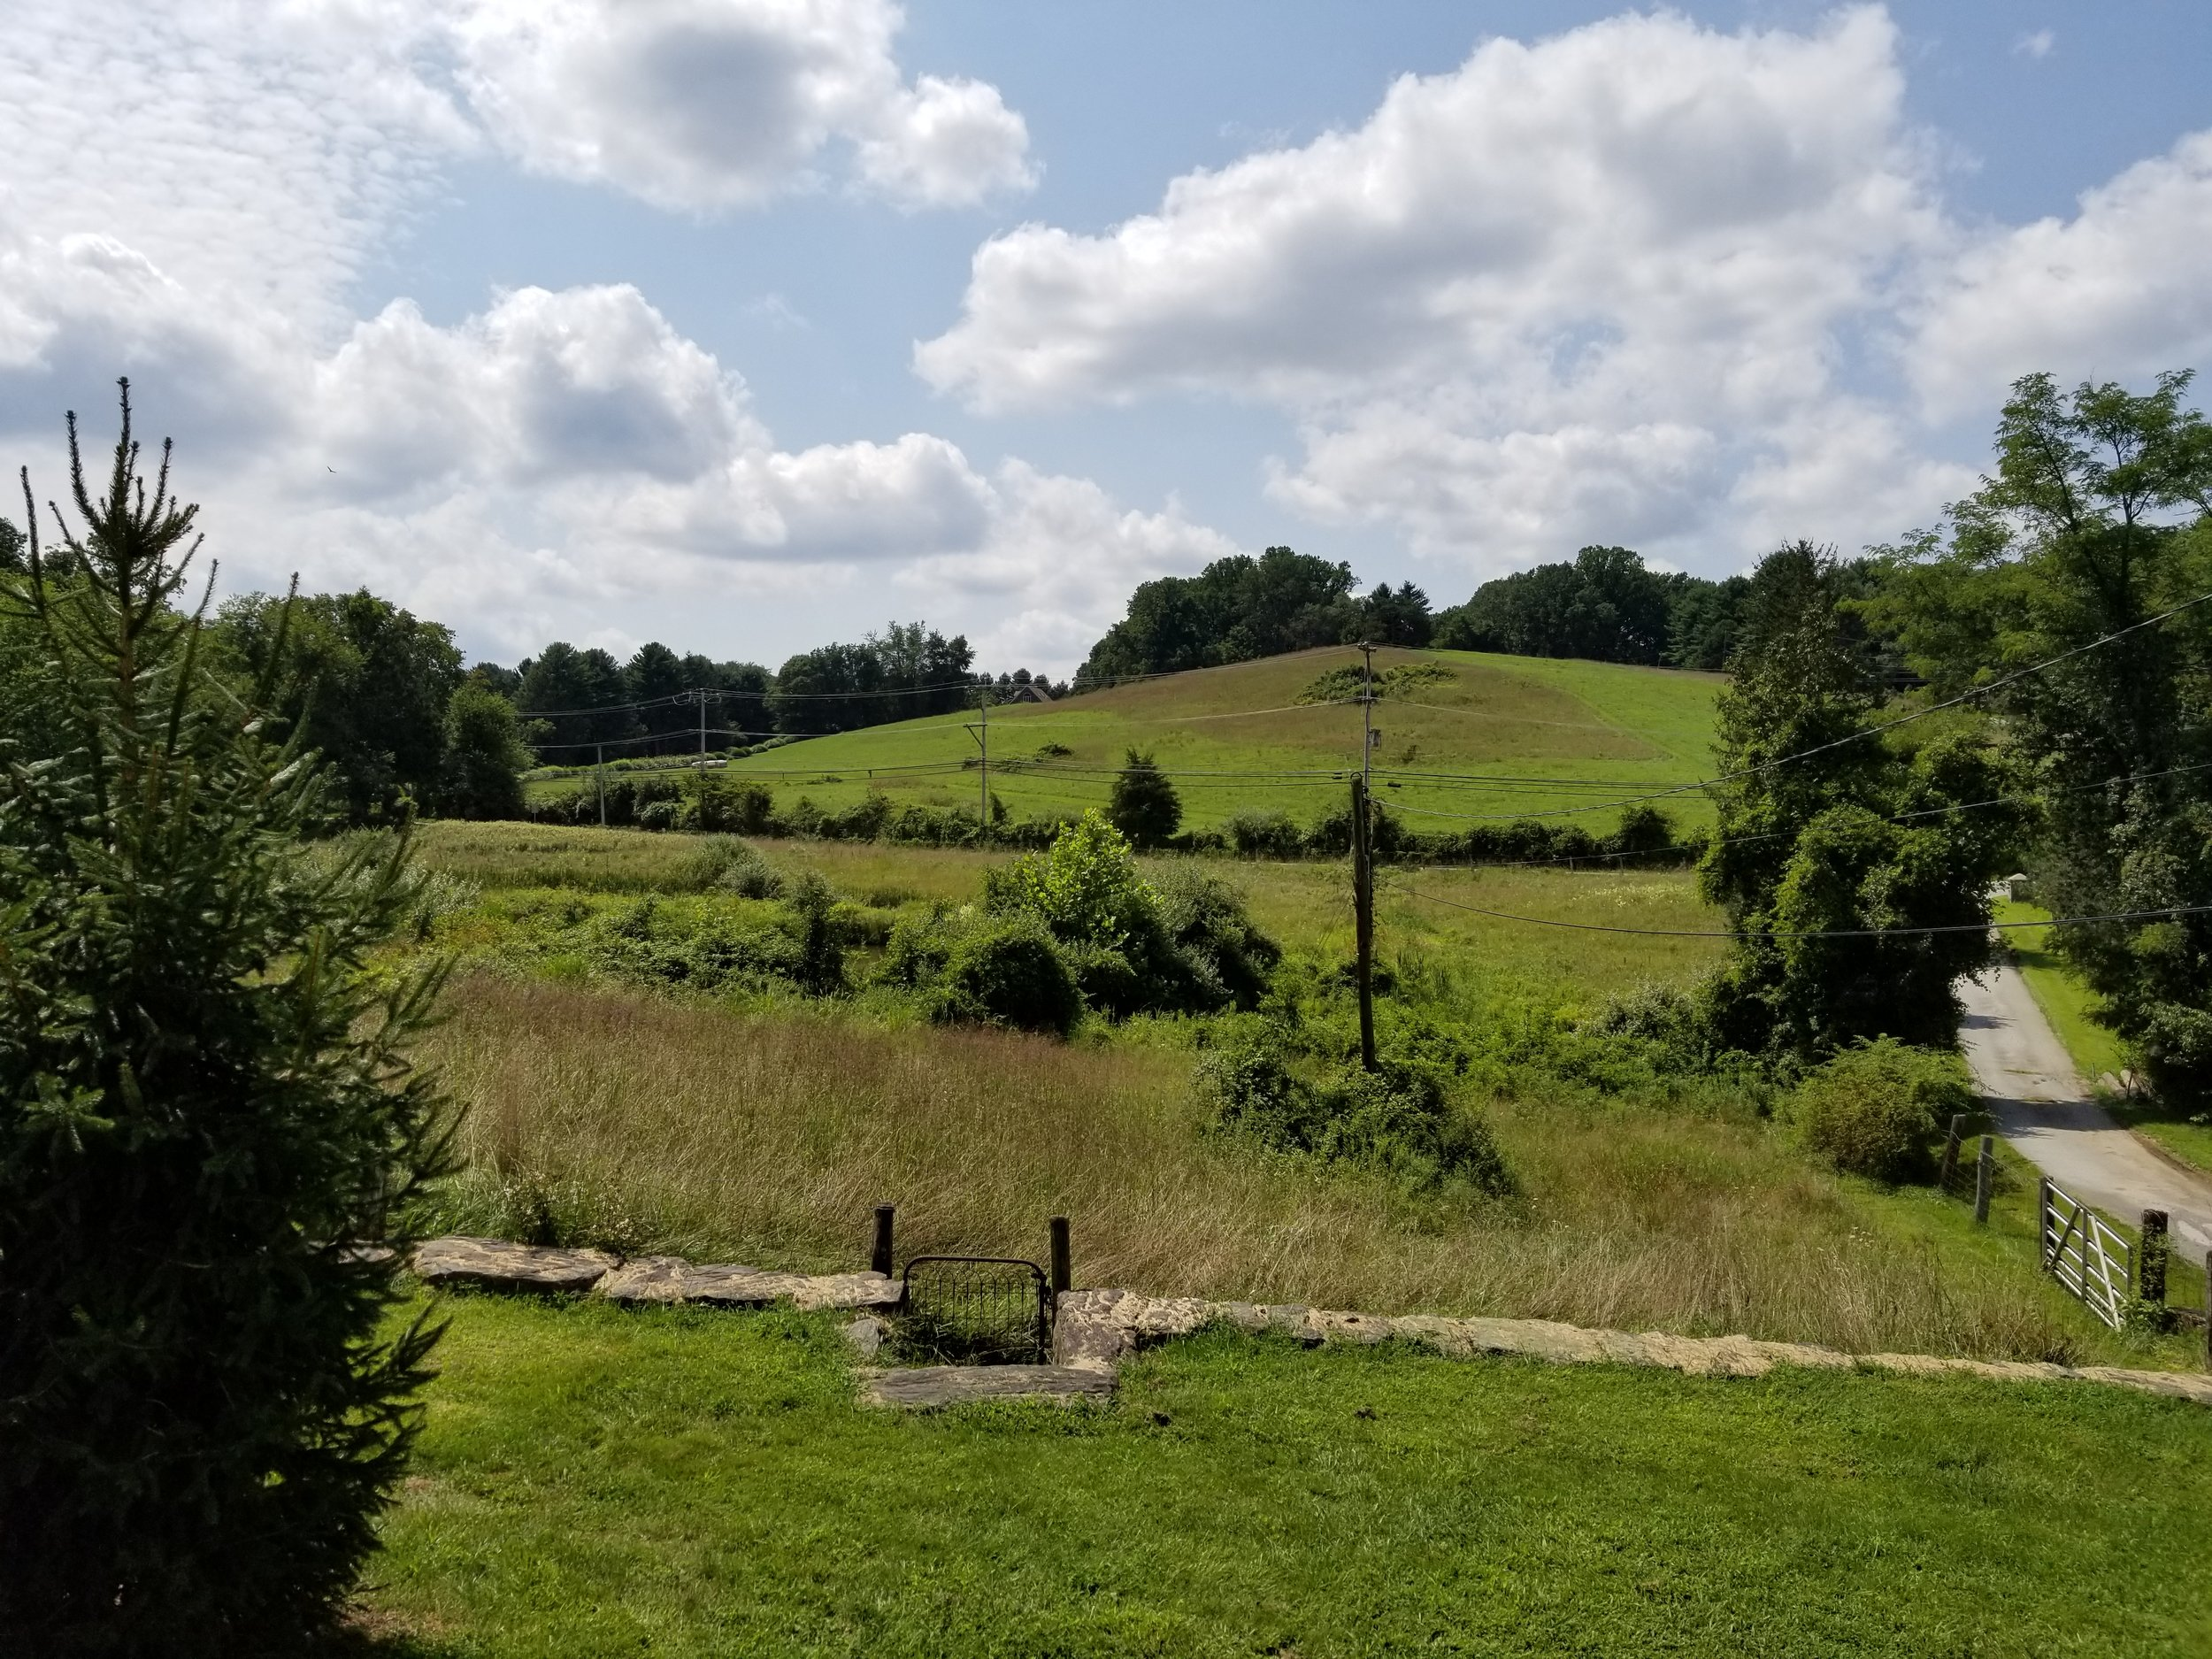 The view today of Kuerner's Hill from Kuerner Farm. Photo: James Panero